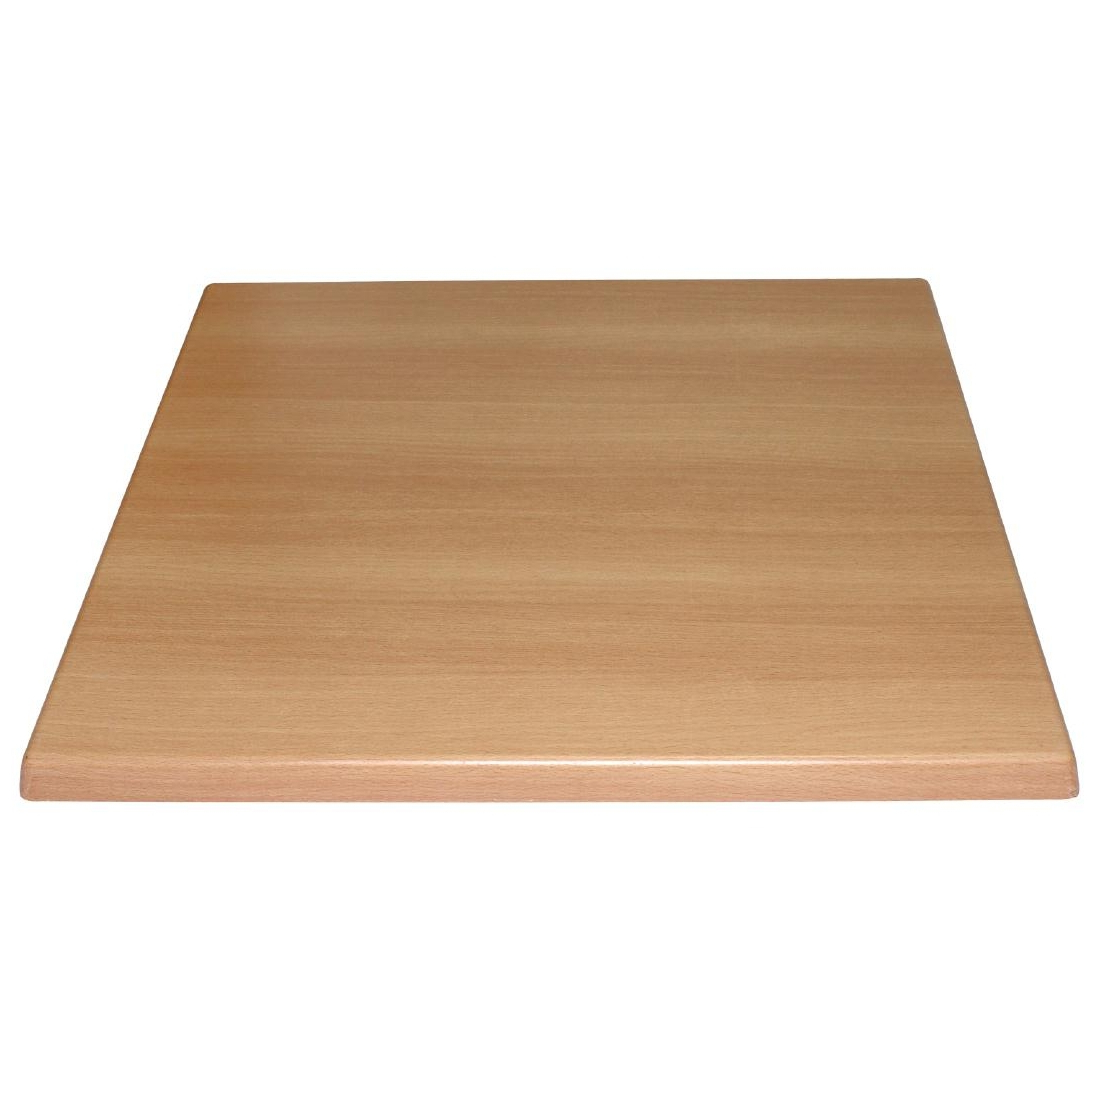 Table top Ftd8 Bolero Square Table top 600mm Beech